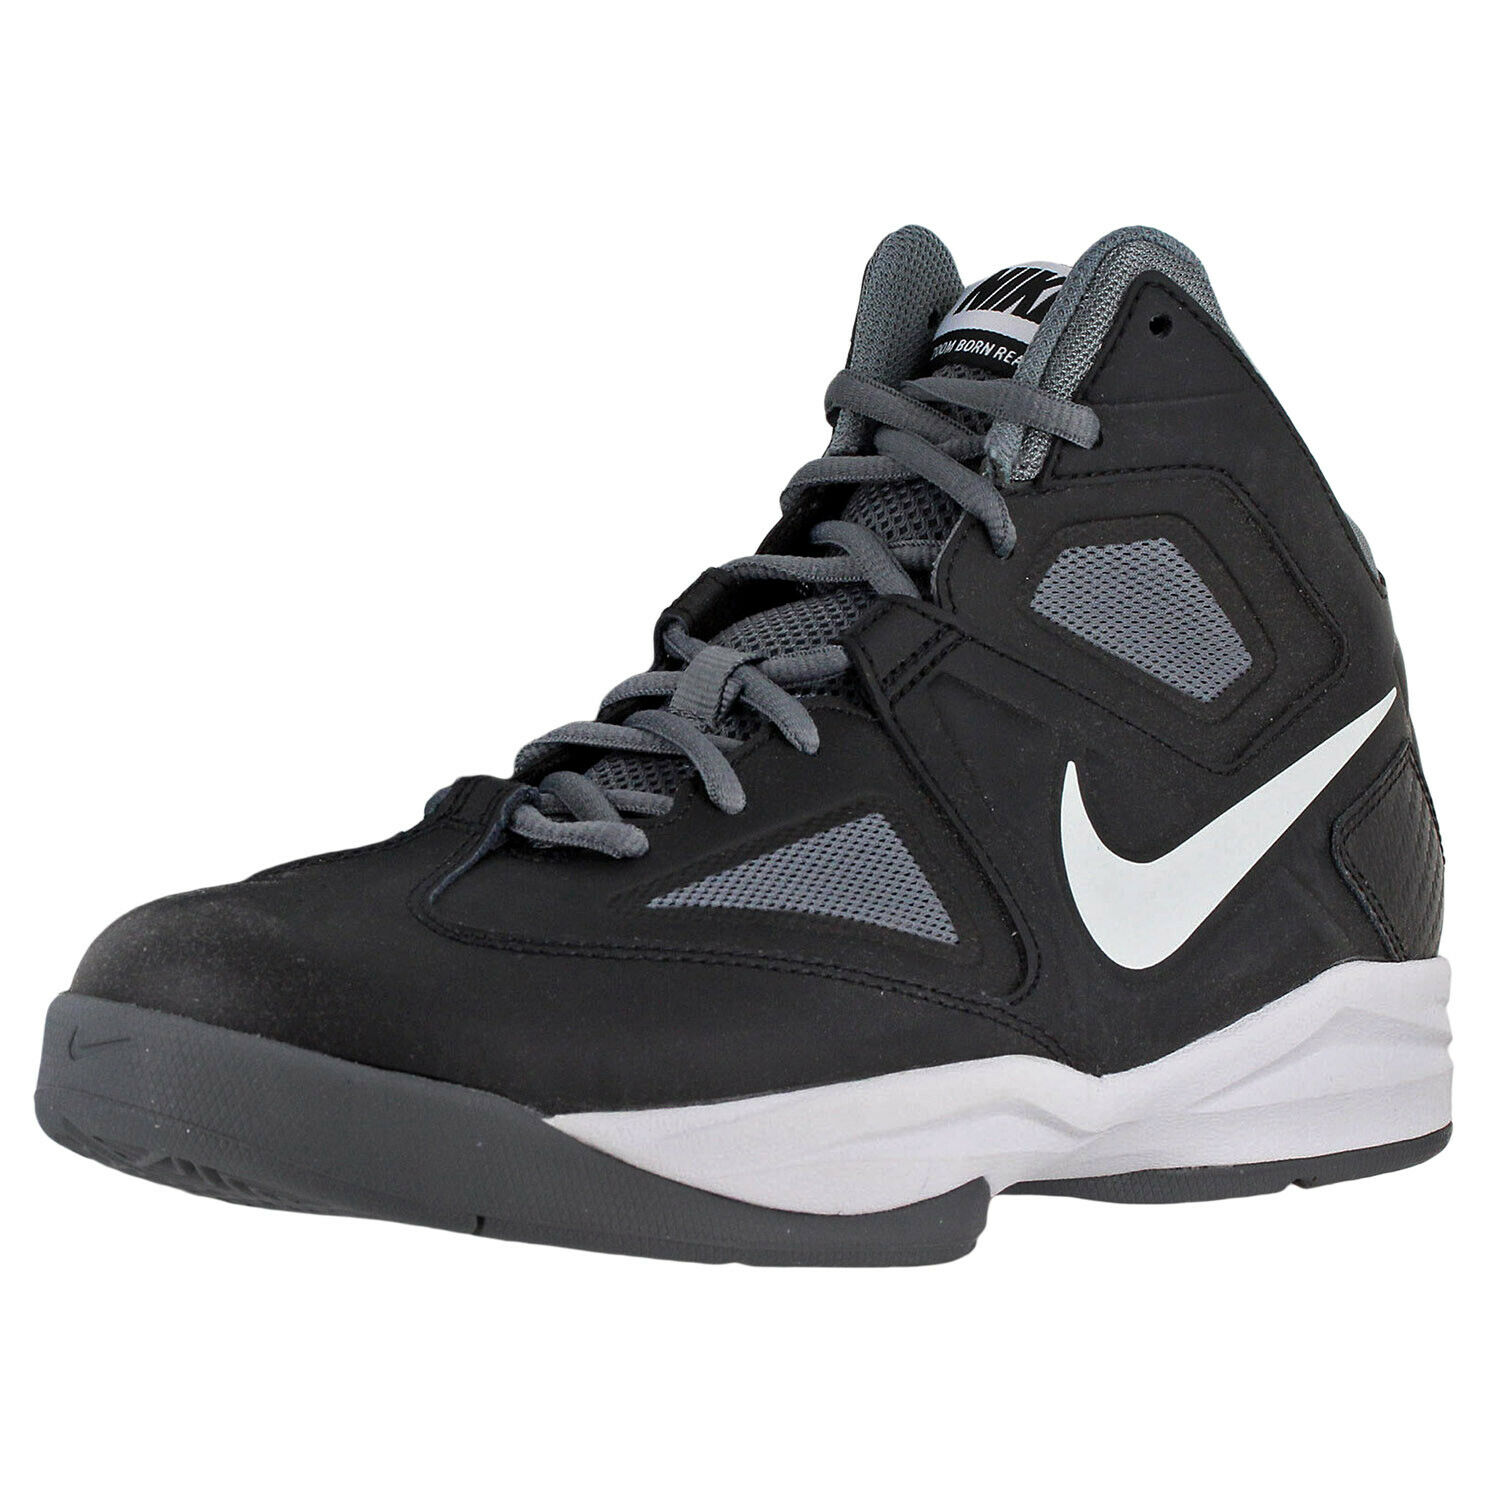 NIKE ZOOM BN READY MEN'S ATHLETIC SHOES 610229-004 SIZE 8